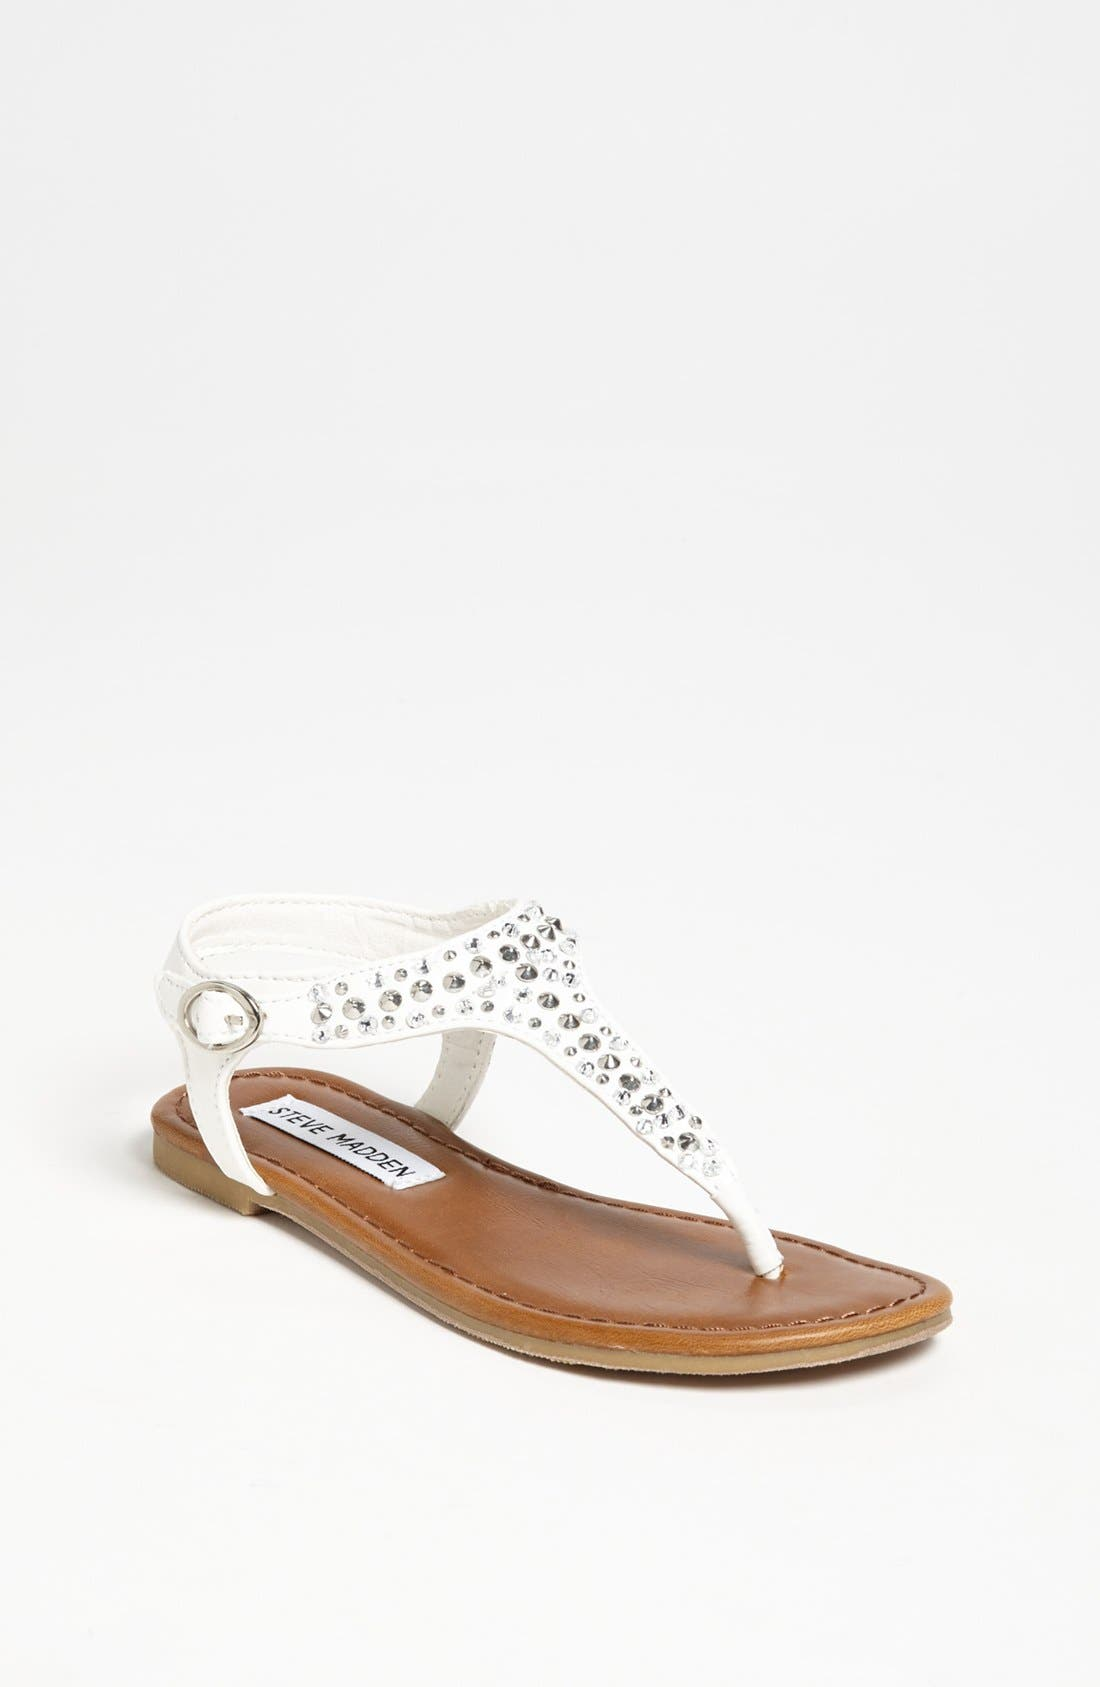 Alternate Image 1 Selected - Steve Madden 'Beyond' Sandal (Toddler, Little Kid & Big Kid)